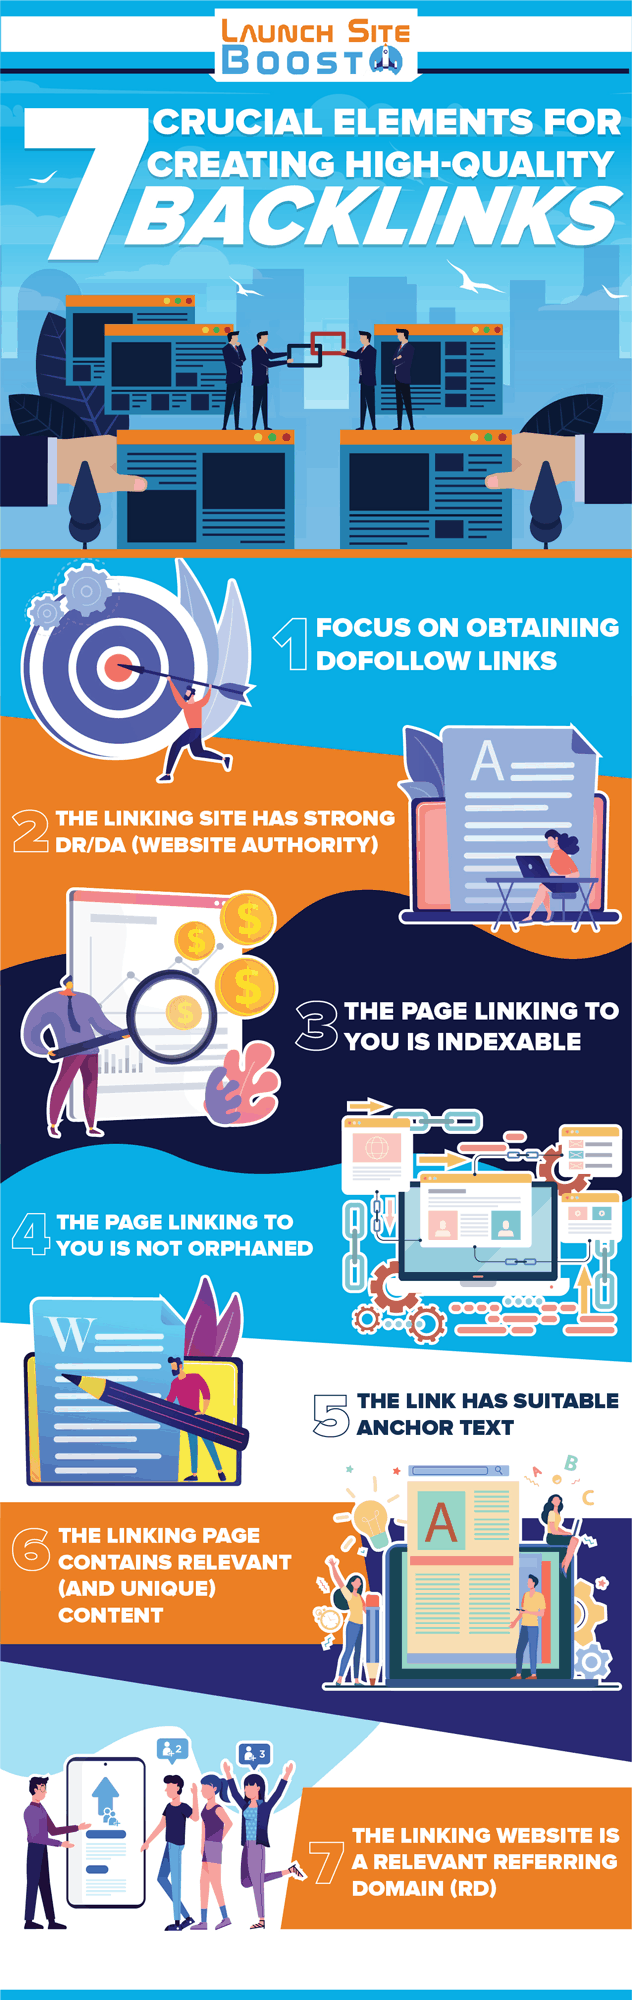 7 Crucial Elements for Creating High-Quality Backlinks